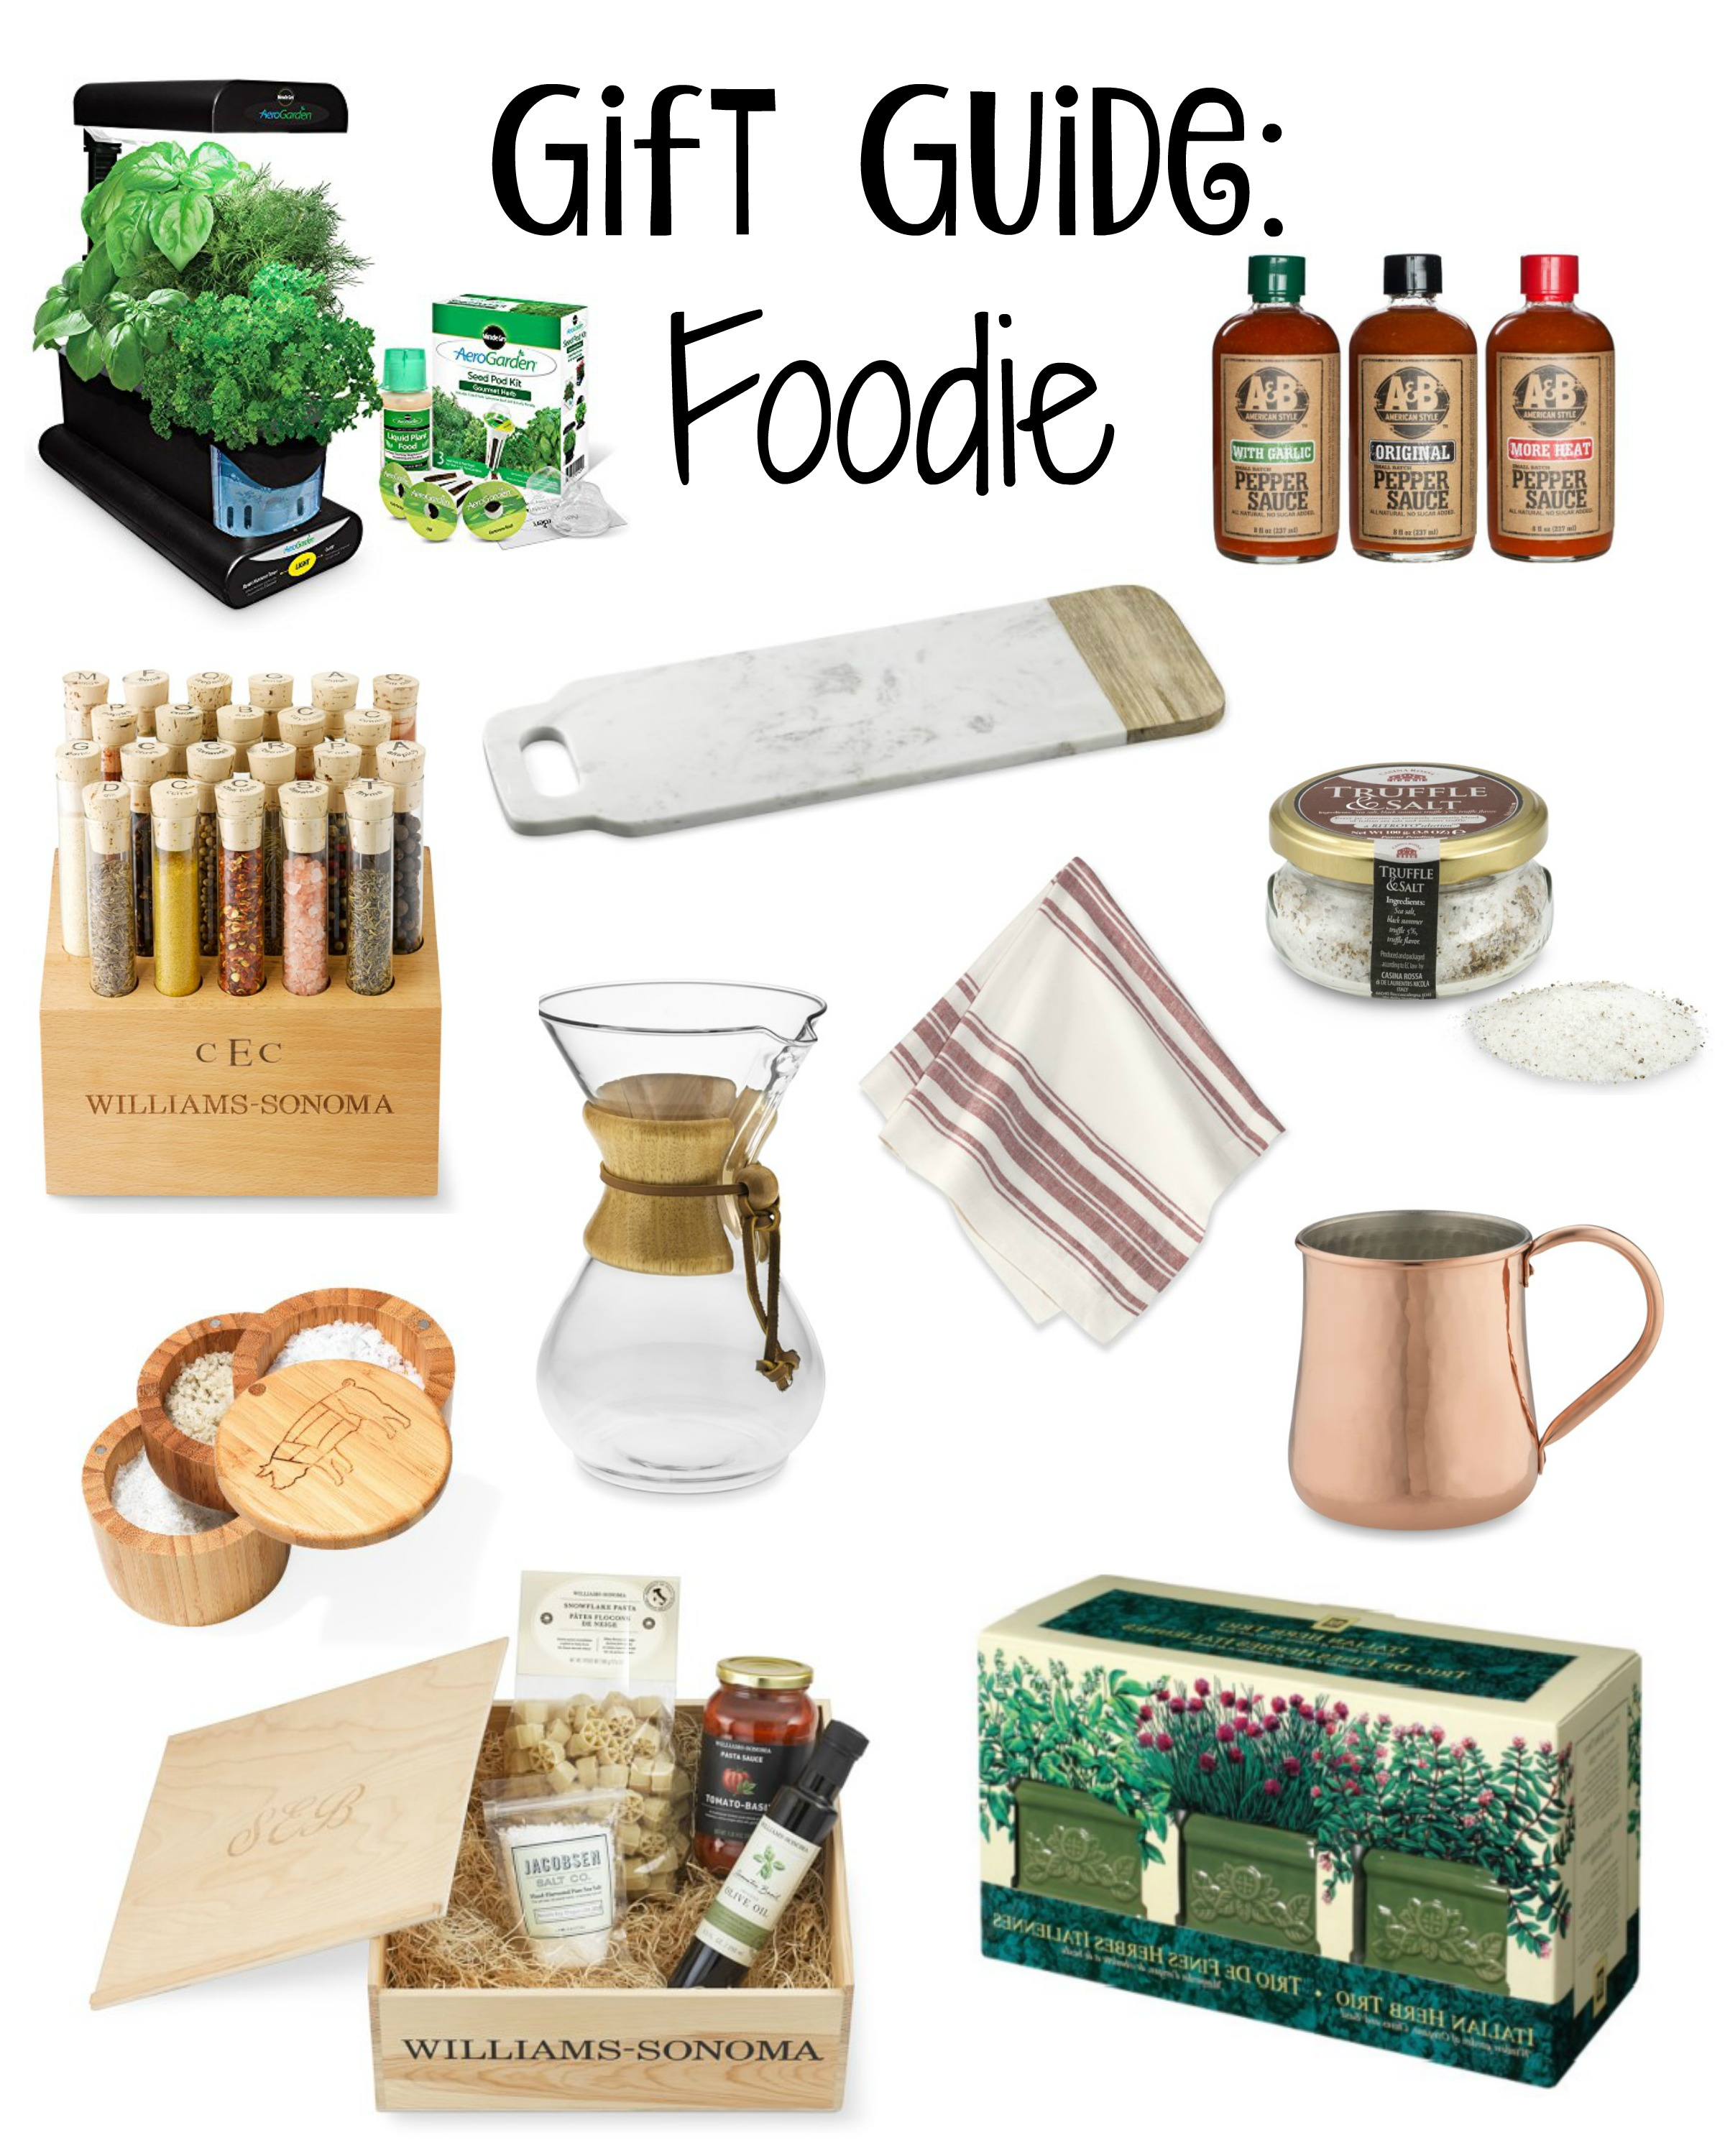 Gift Guide: Foodie